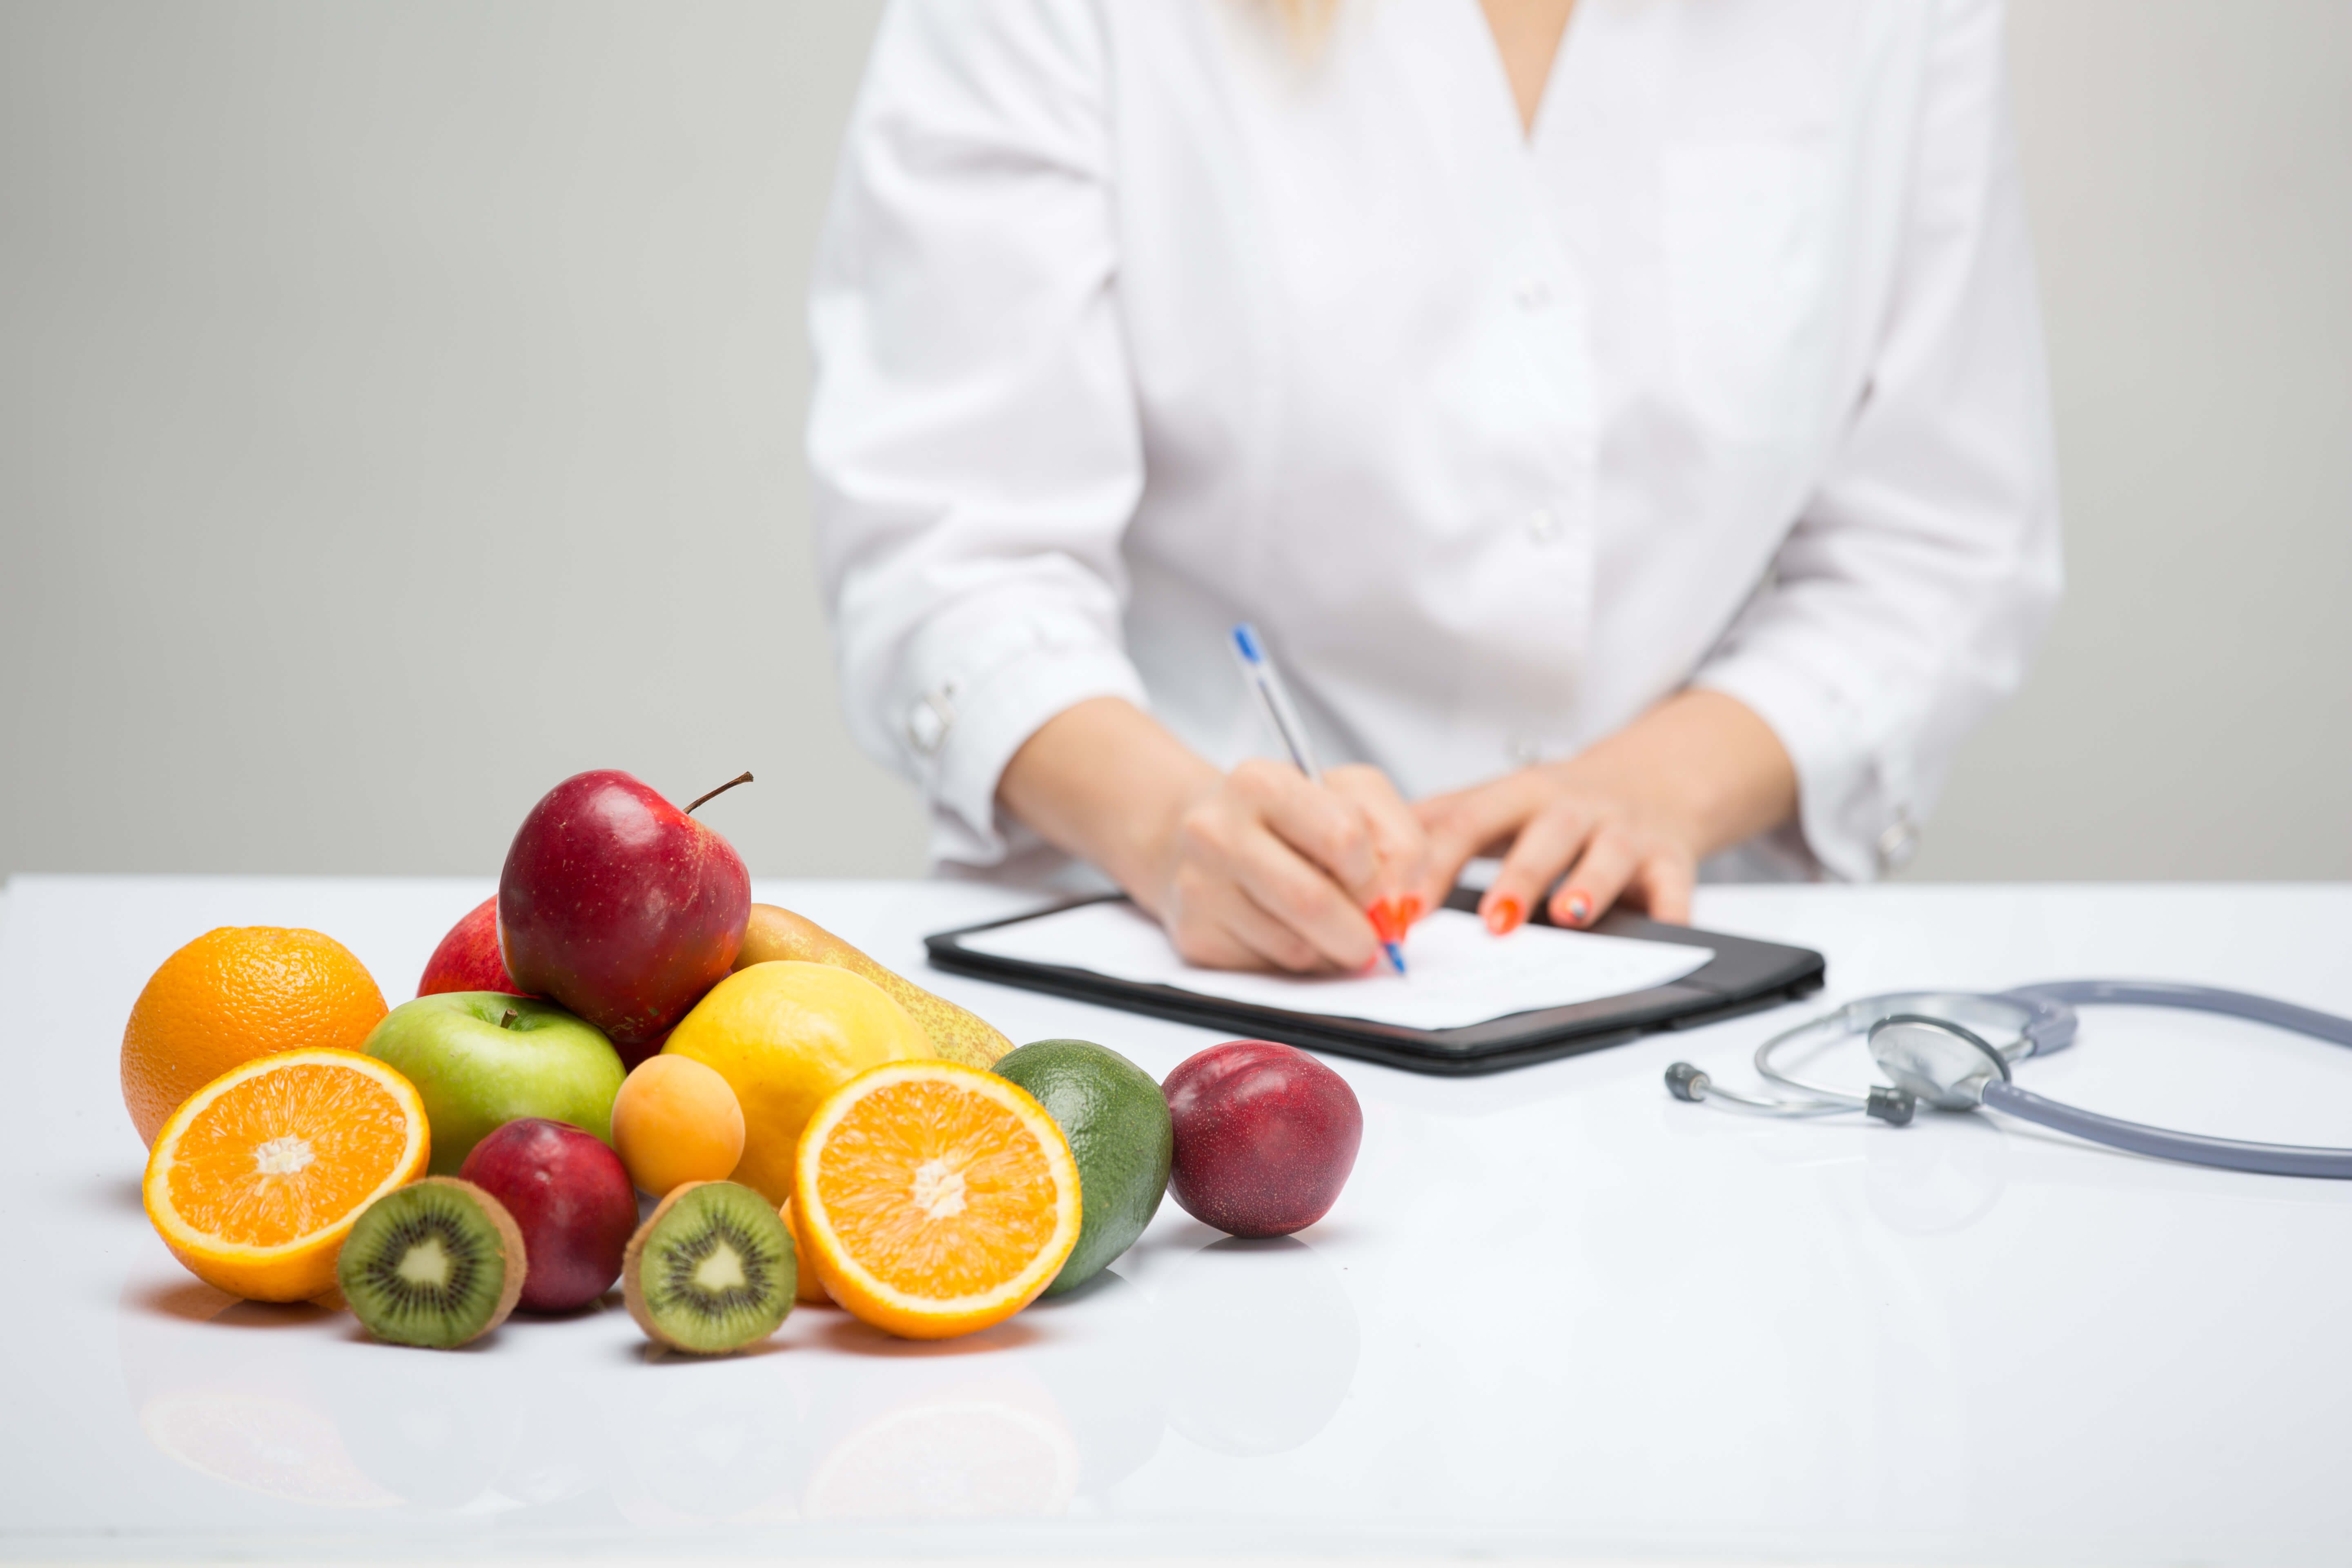 Healthy life style concept, doctor writing, diet and losing weight